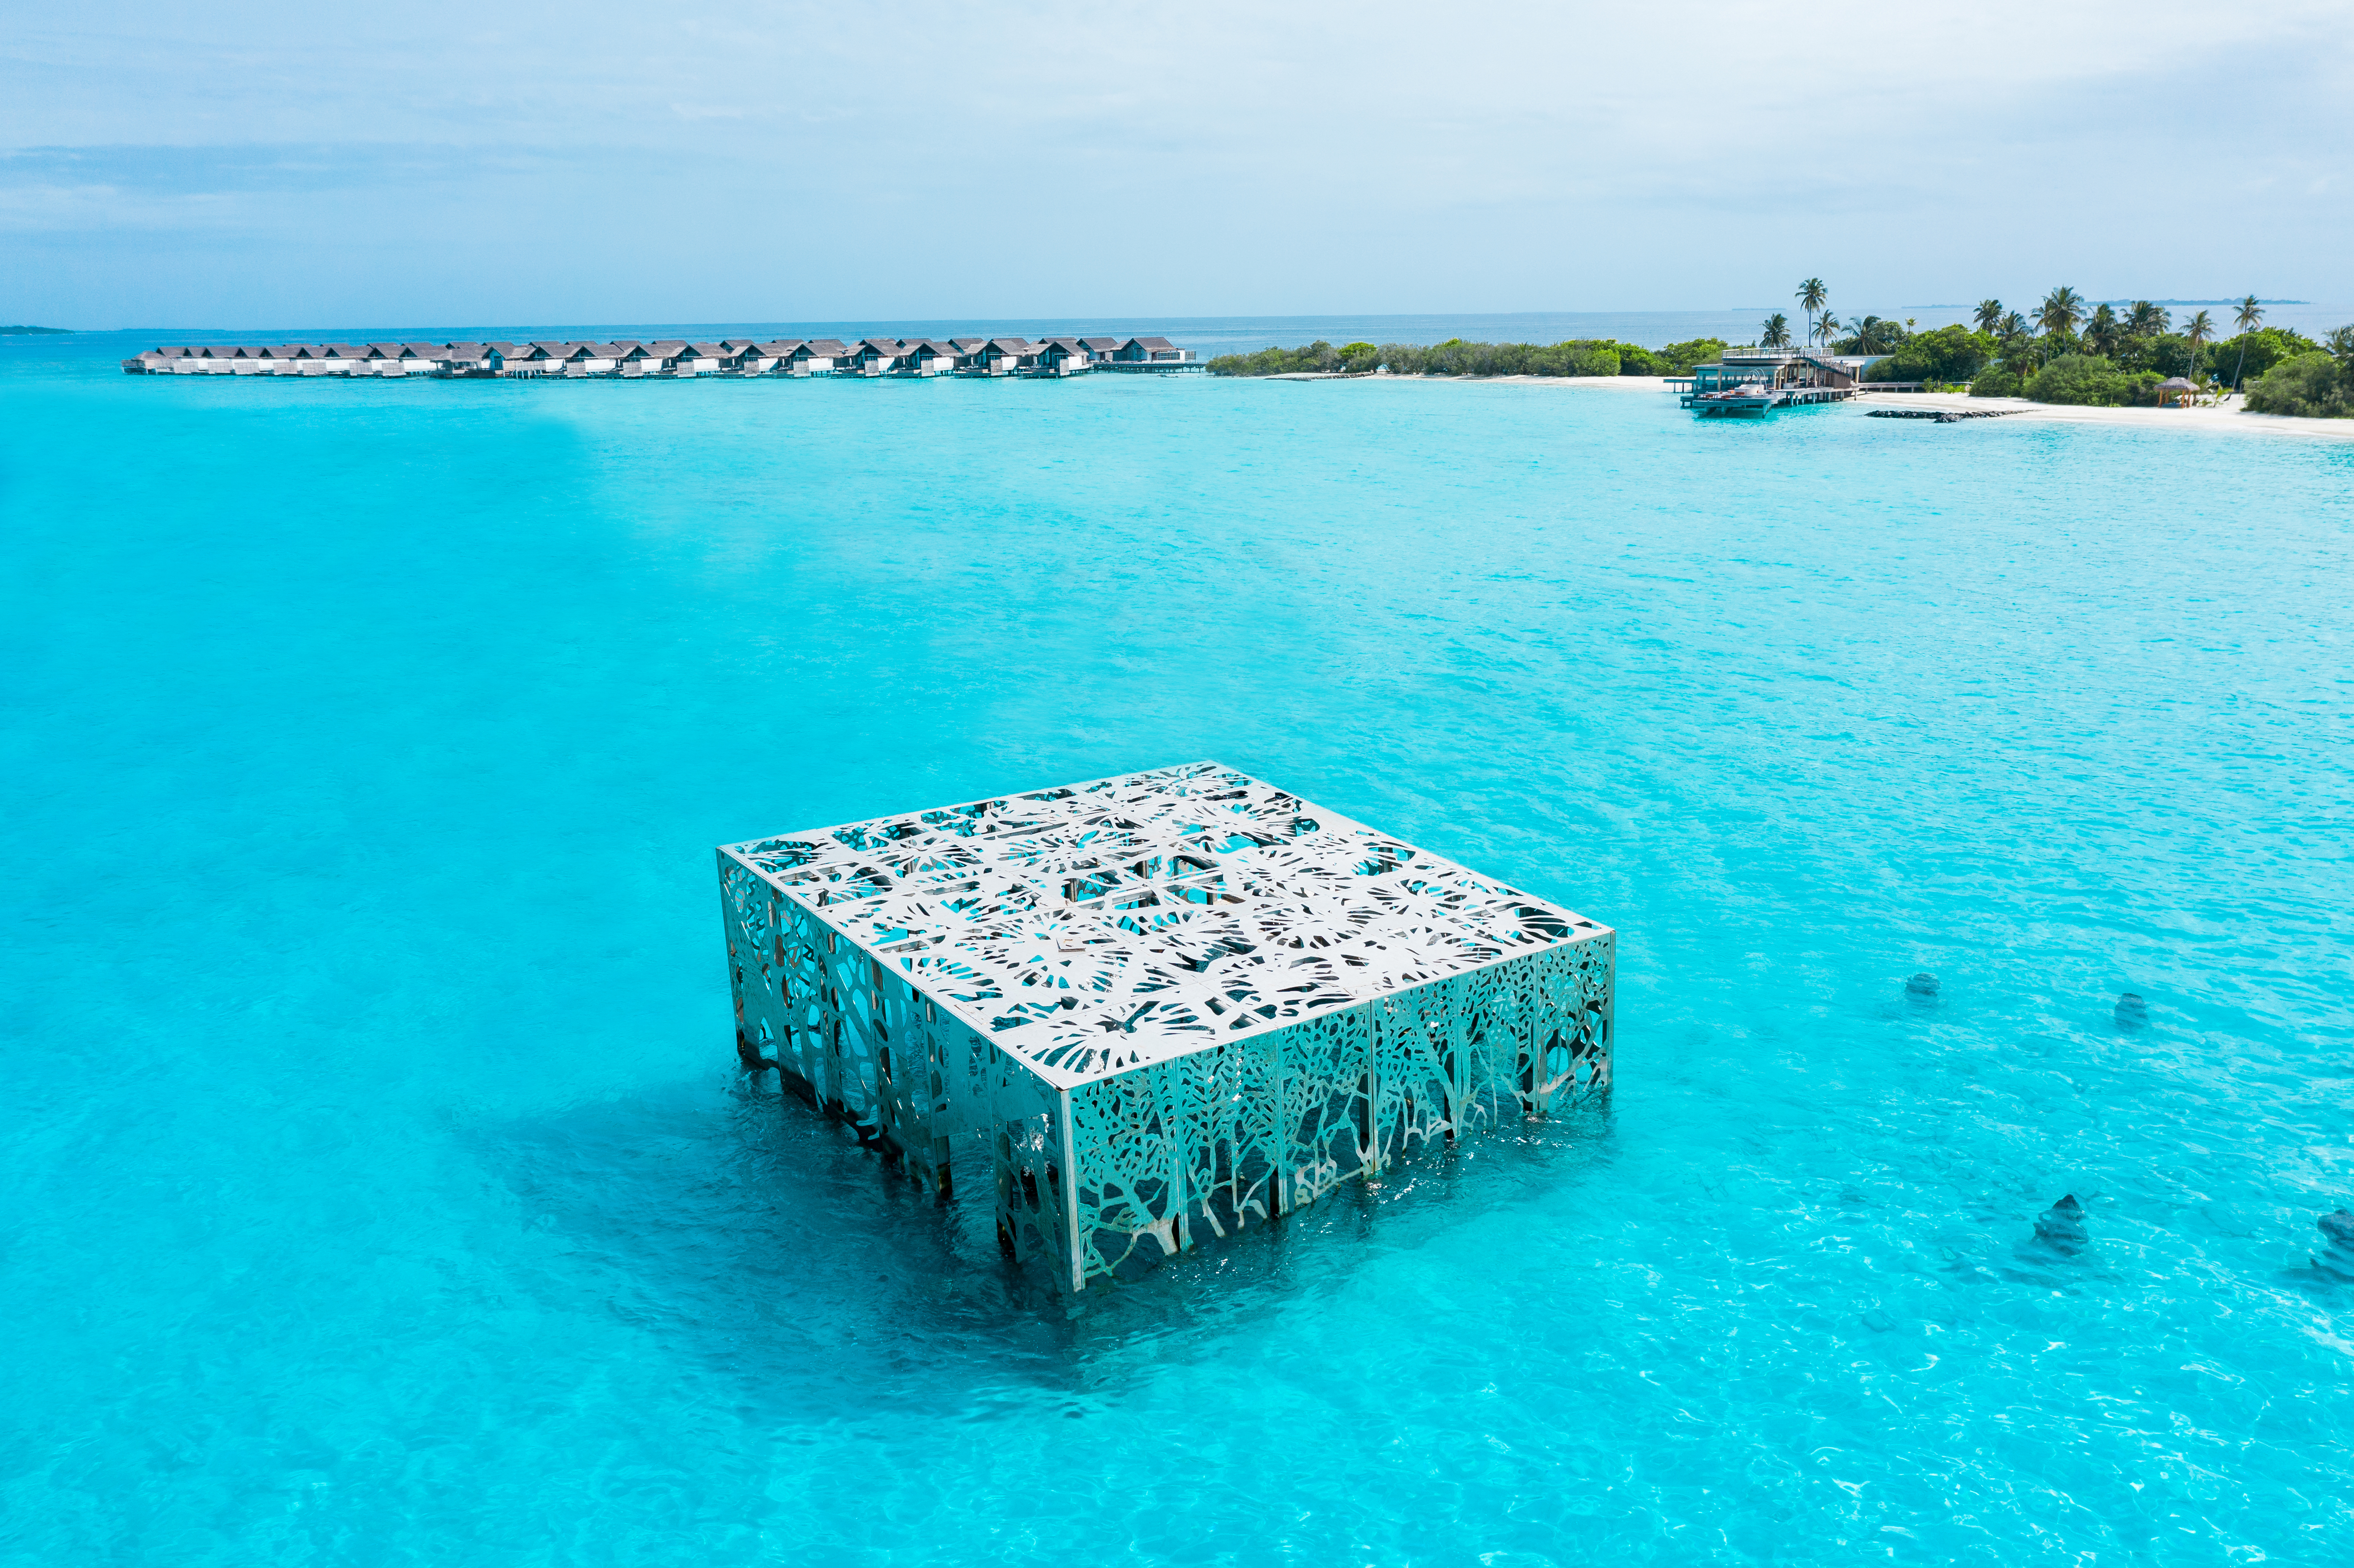 Fairmont Maldives Launches Must See Underwater Eco Art